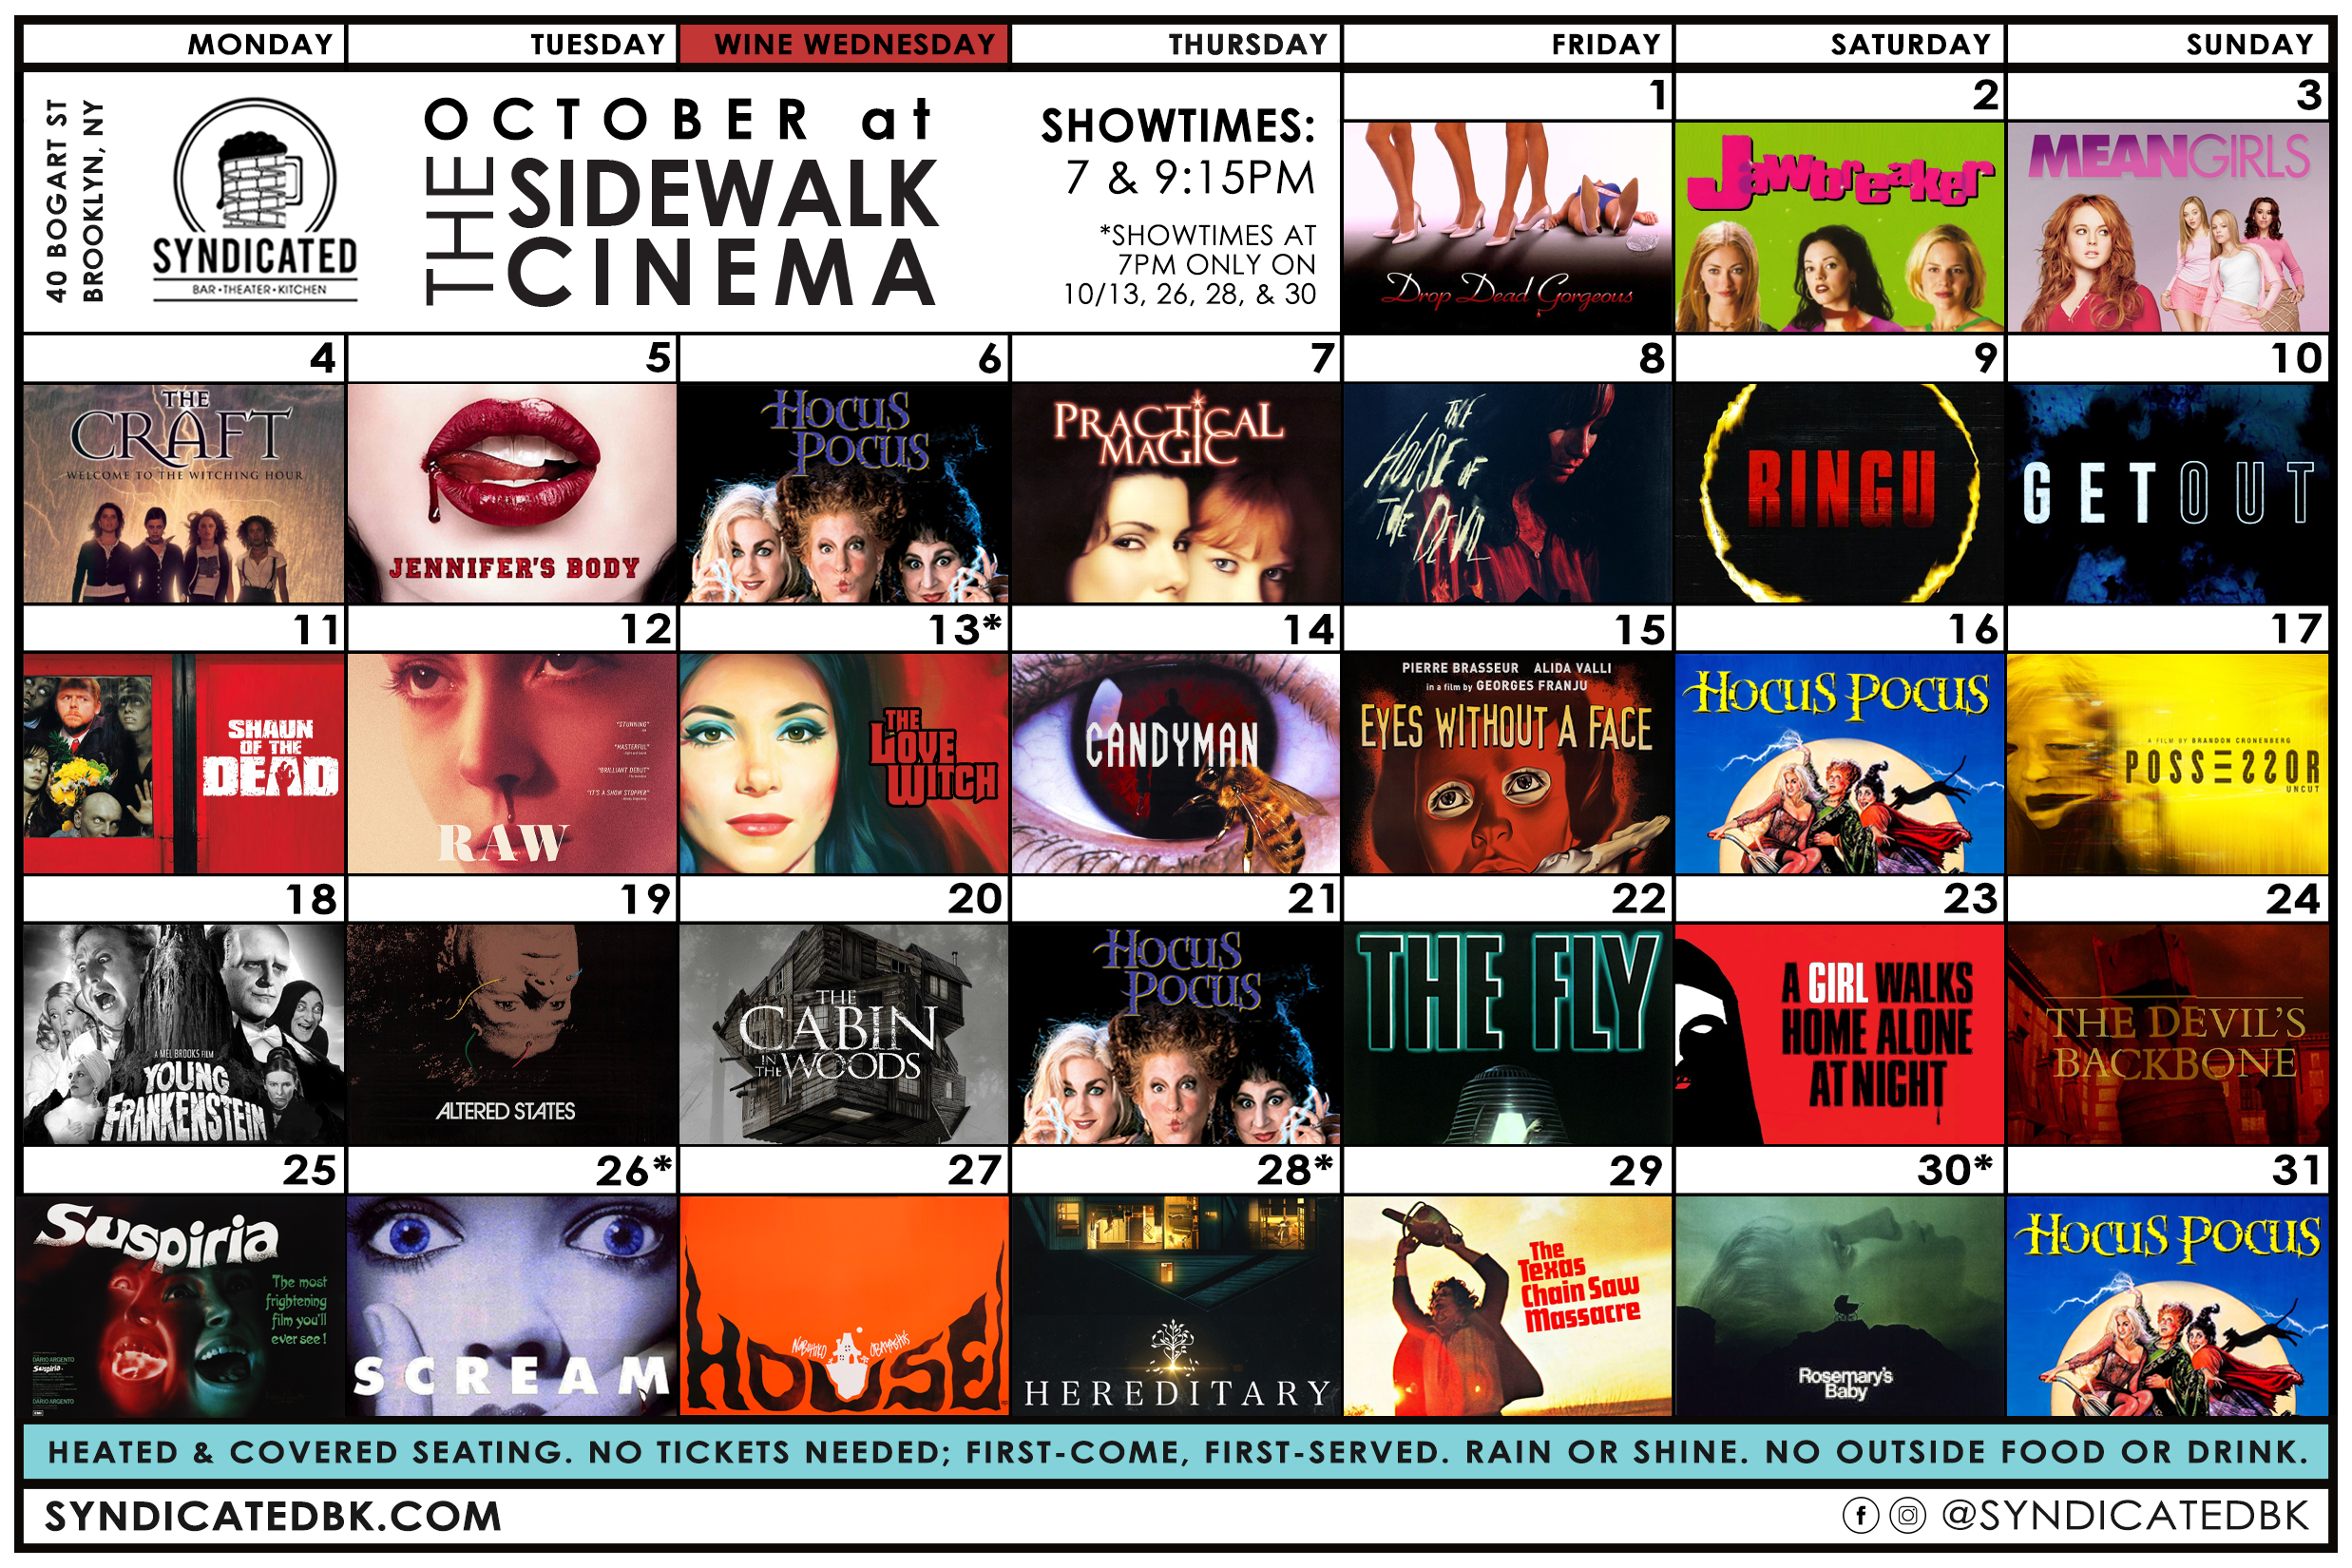 October Sidewalk Cinema Schedule | October 1st – Drop Dead Gorgeous | 2nd – Jawbreaker | 3rd – Mean Girls | 4th – The Craft | 5th – Jennifer's Body | 6th – Hocus Pocus | 7th – Practical Magic | 8th – The House of the Devil | 9th – Ringu | 10th – Get Out | 11th –Shaun of the Dead | 12th – Raw | 13th – The Love Witch | 14th – Candyman (1992) | 15th – Eyes Without a Face | 16th – Hocus Pocus | 17th – Possessor (Uncut) | 18th – Young Frankenstein | 19th – Altered States | 20th – The Cabin in the Woods | 21st – Hocus Pocus | 22nd – The Fly | 23rd –  A Girl Walks Home Alone at Night | 24th – The Devil's Backbone | 25th – Suspiria (1977) | 26th – Scream | 27th – Hausu | 28th – Hereditary | 29th – The Texas Chain Saw Massacre (1978) | 30th – Rosemary's Baby | 31st – Hocus Pocus